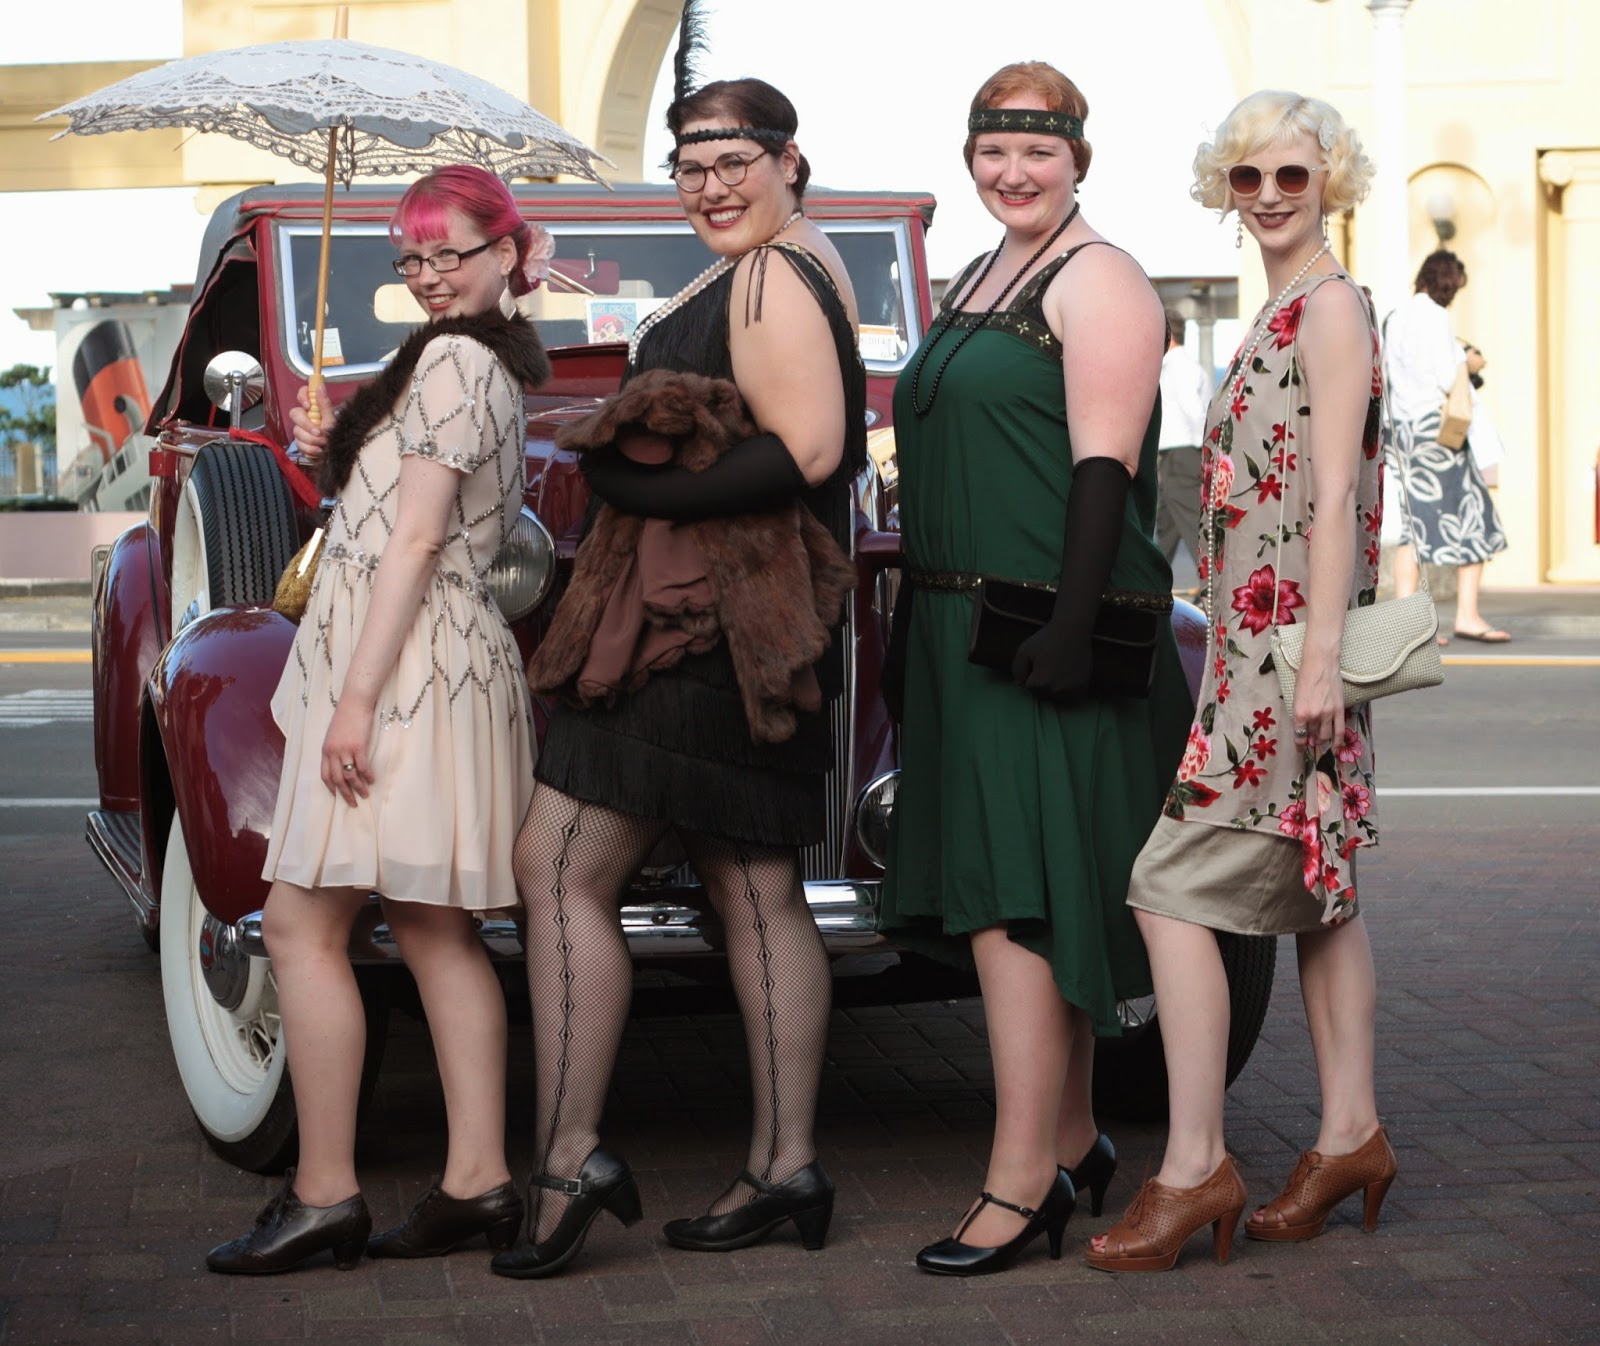 Four girls in art deco flapper costumes pose in front of a vintage car.